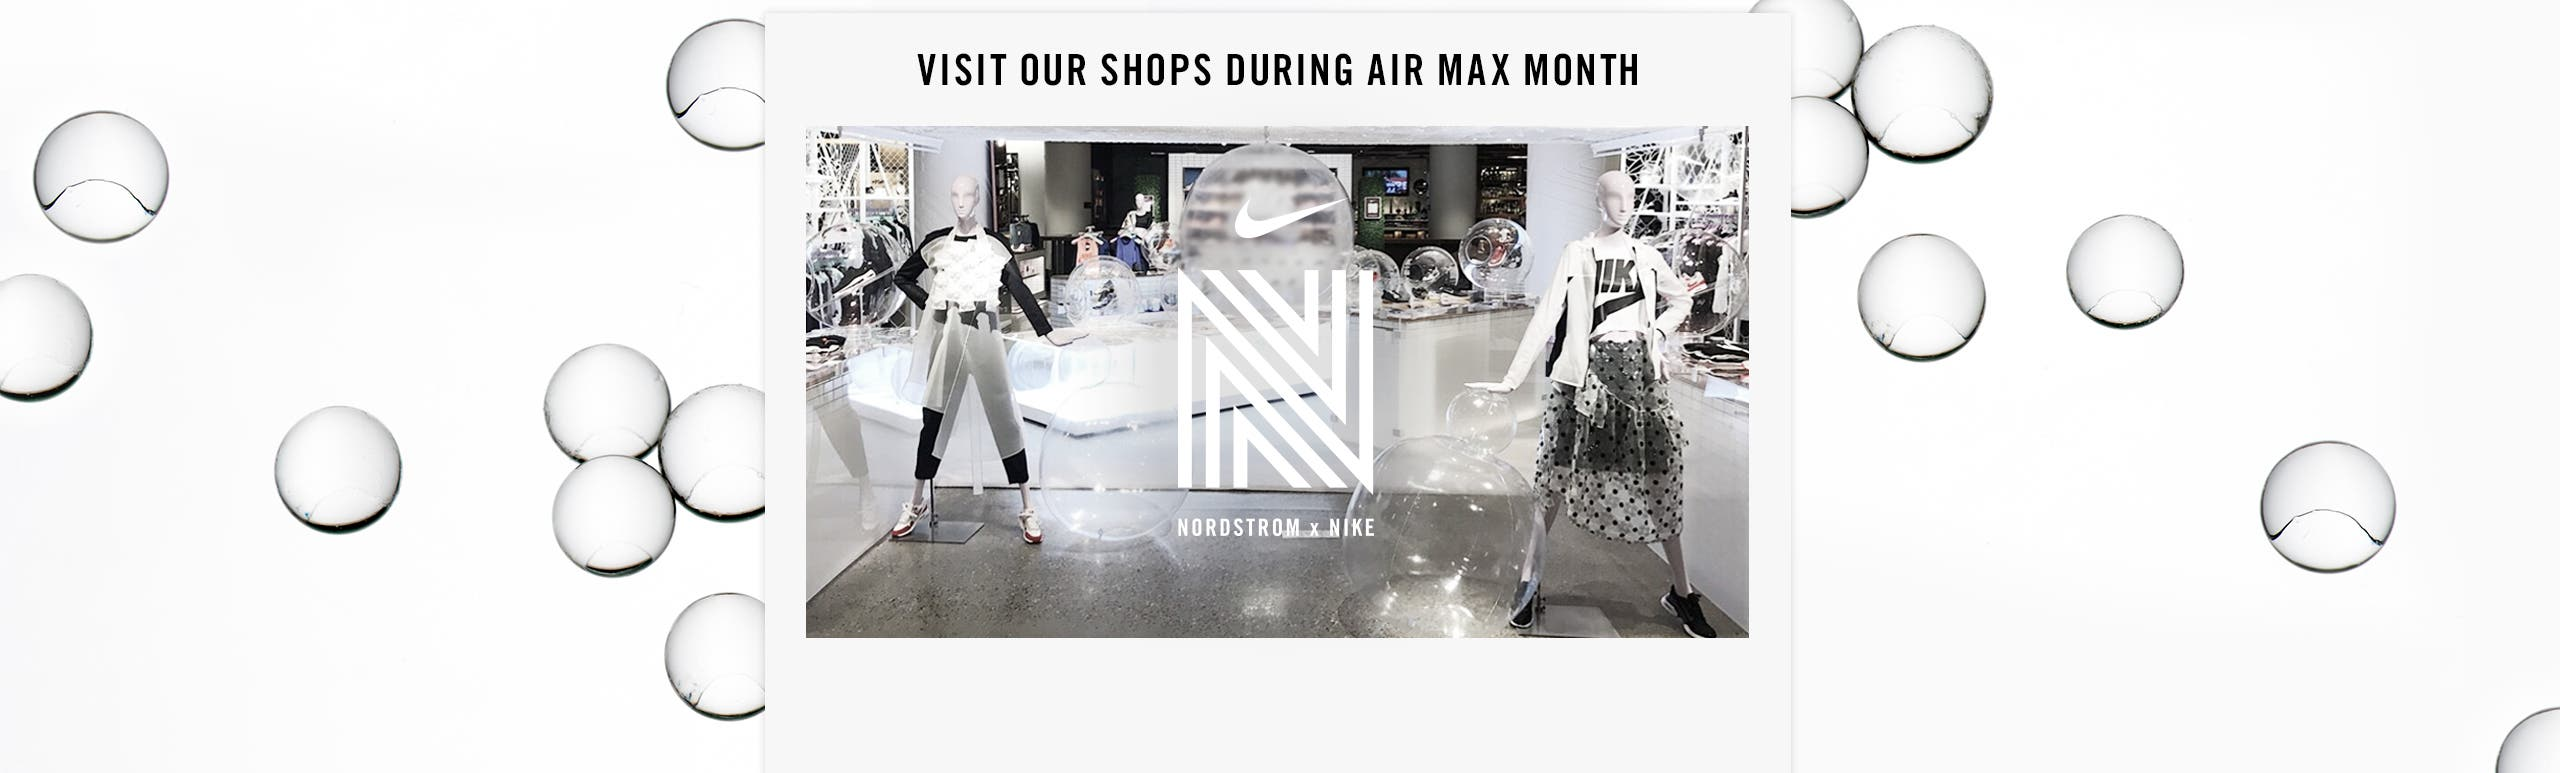 Nike shop-in-shop locations.